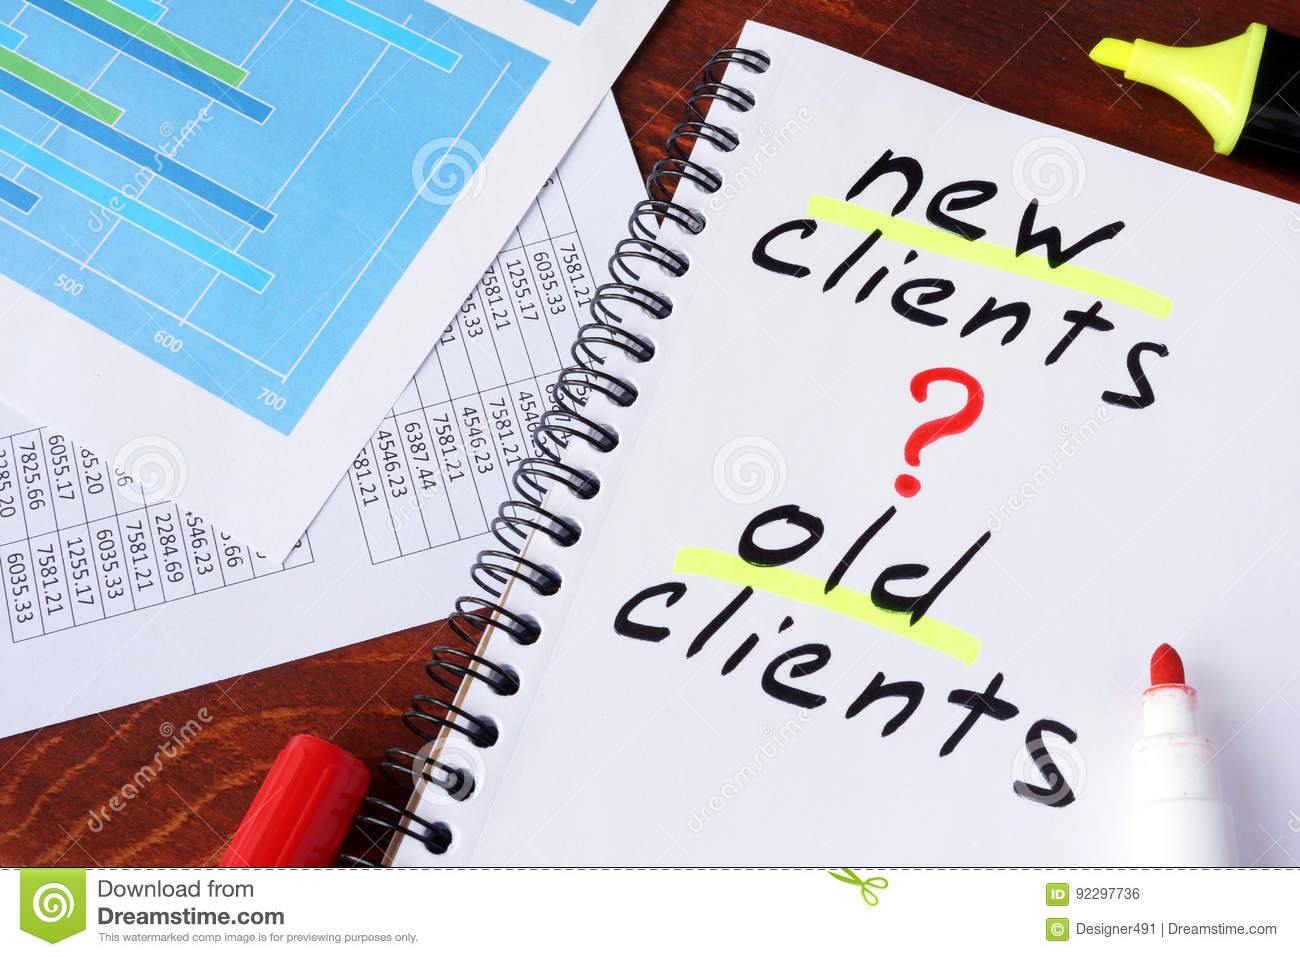 New clients or old clients written in a note.